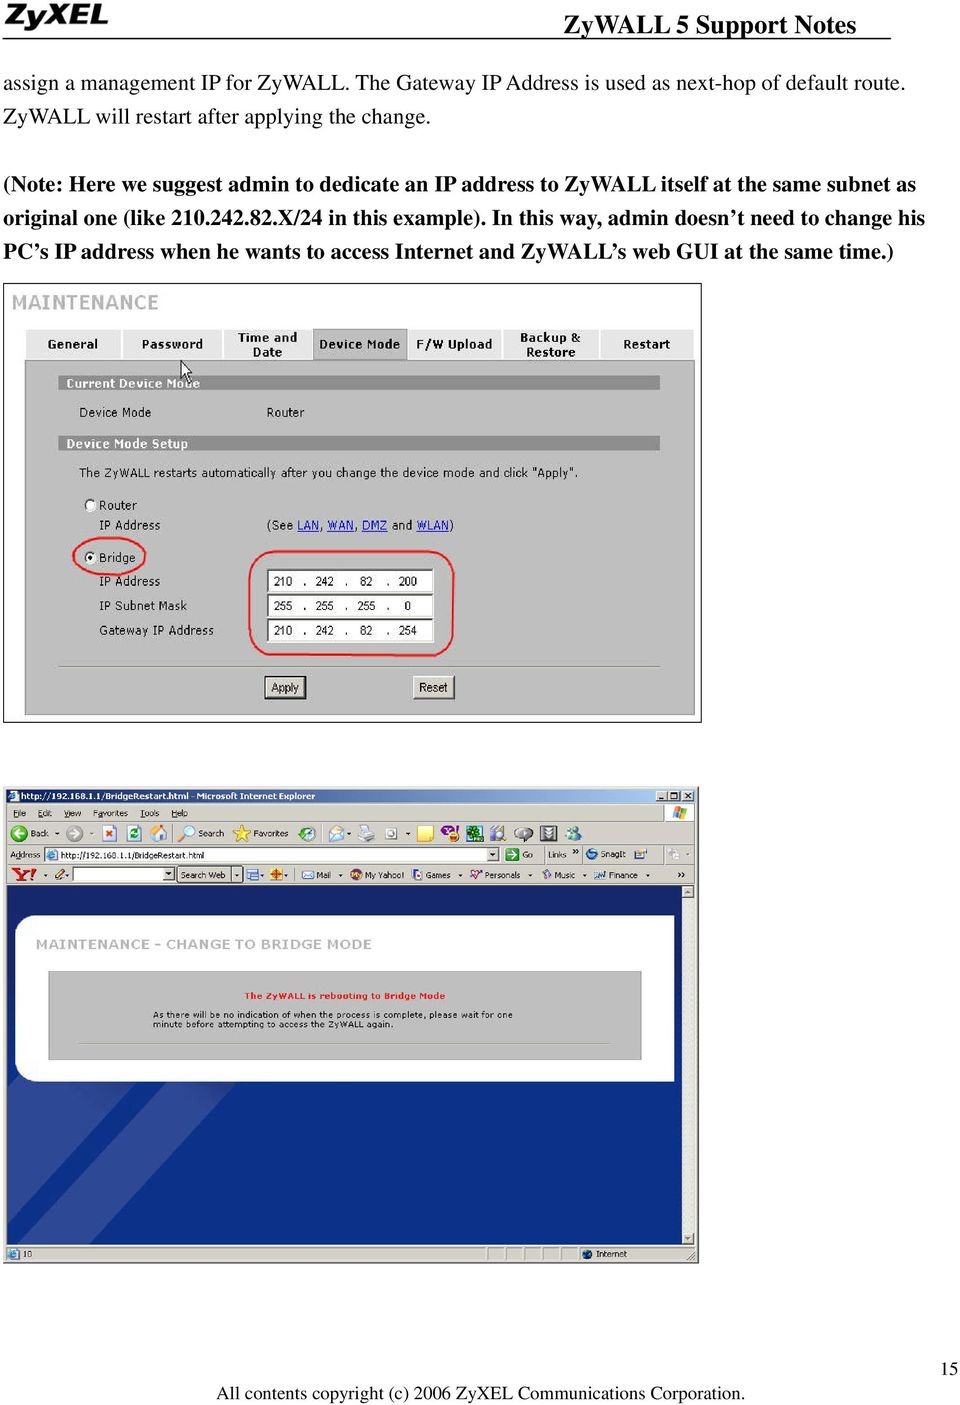 (Note: Here we suggest admin to dedicate an IP address to ZyWALL itself at the same subnet as original one